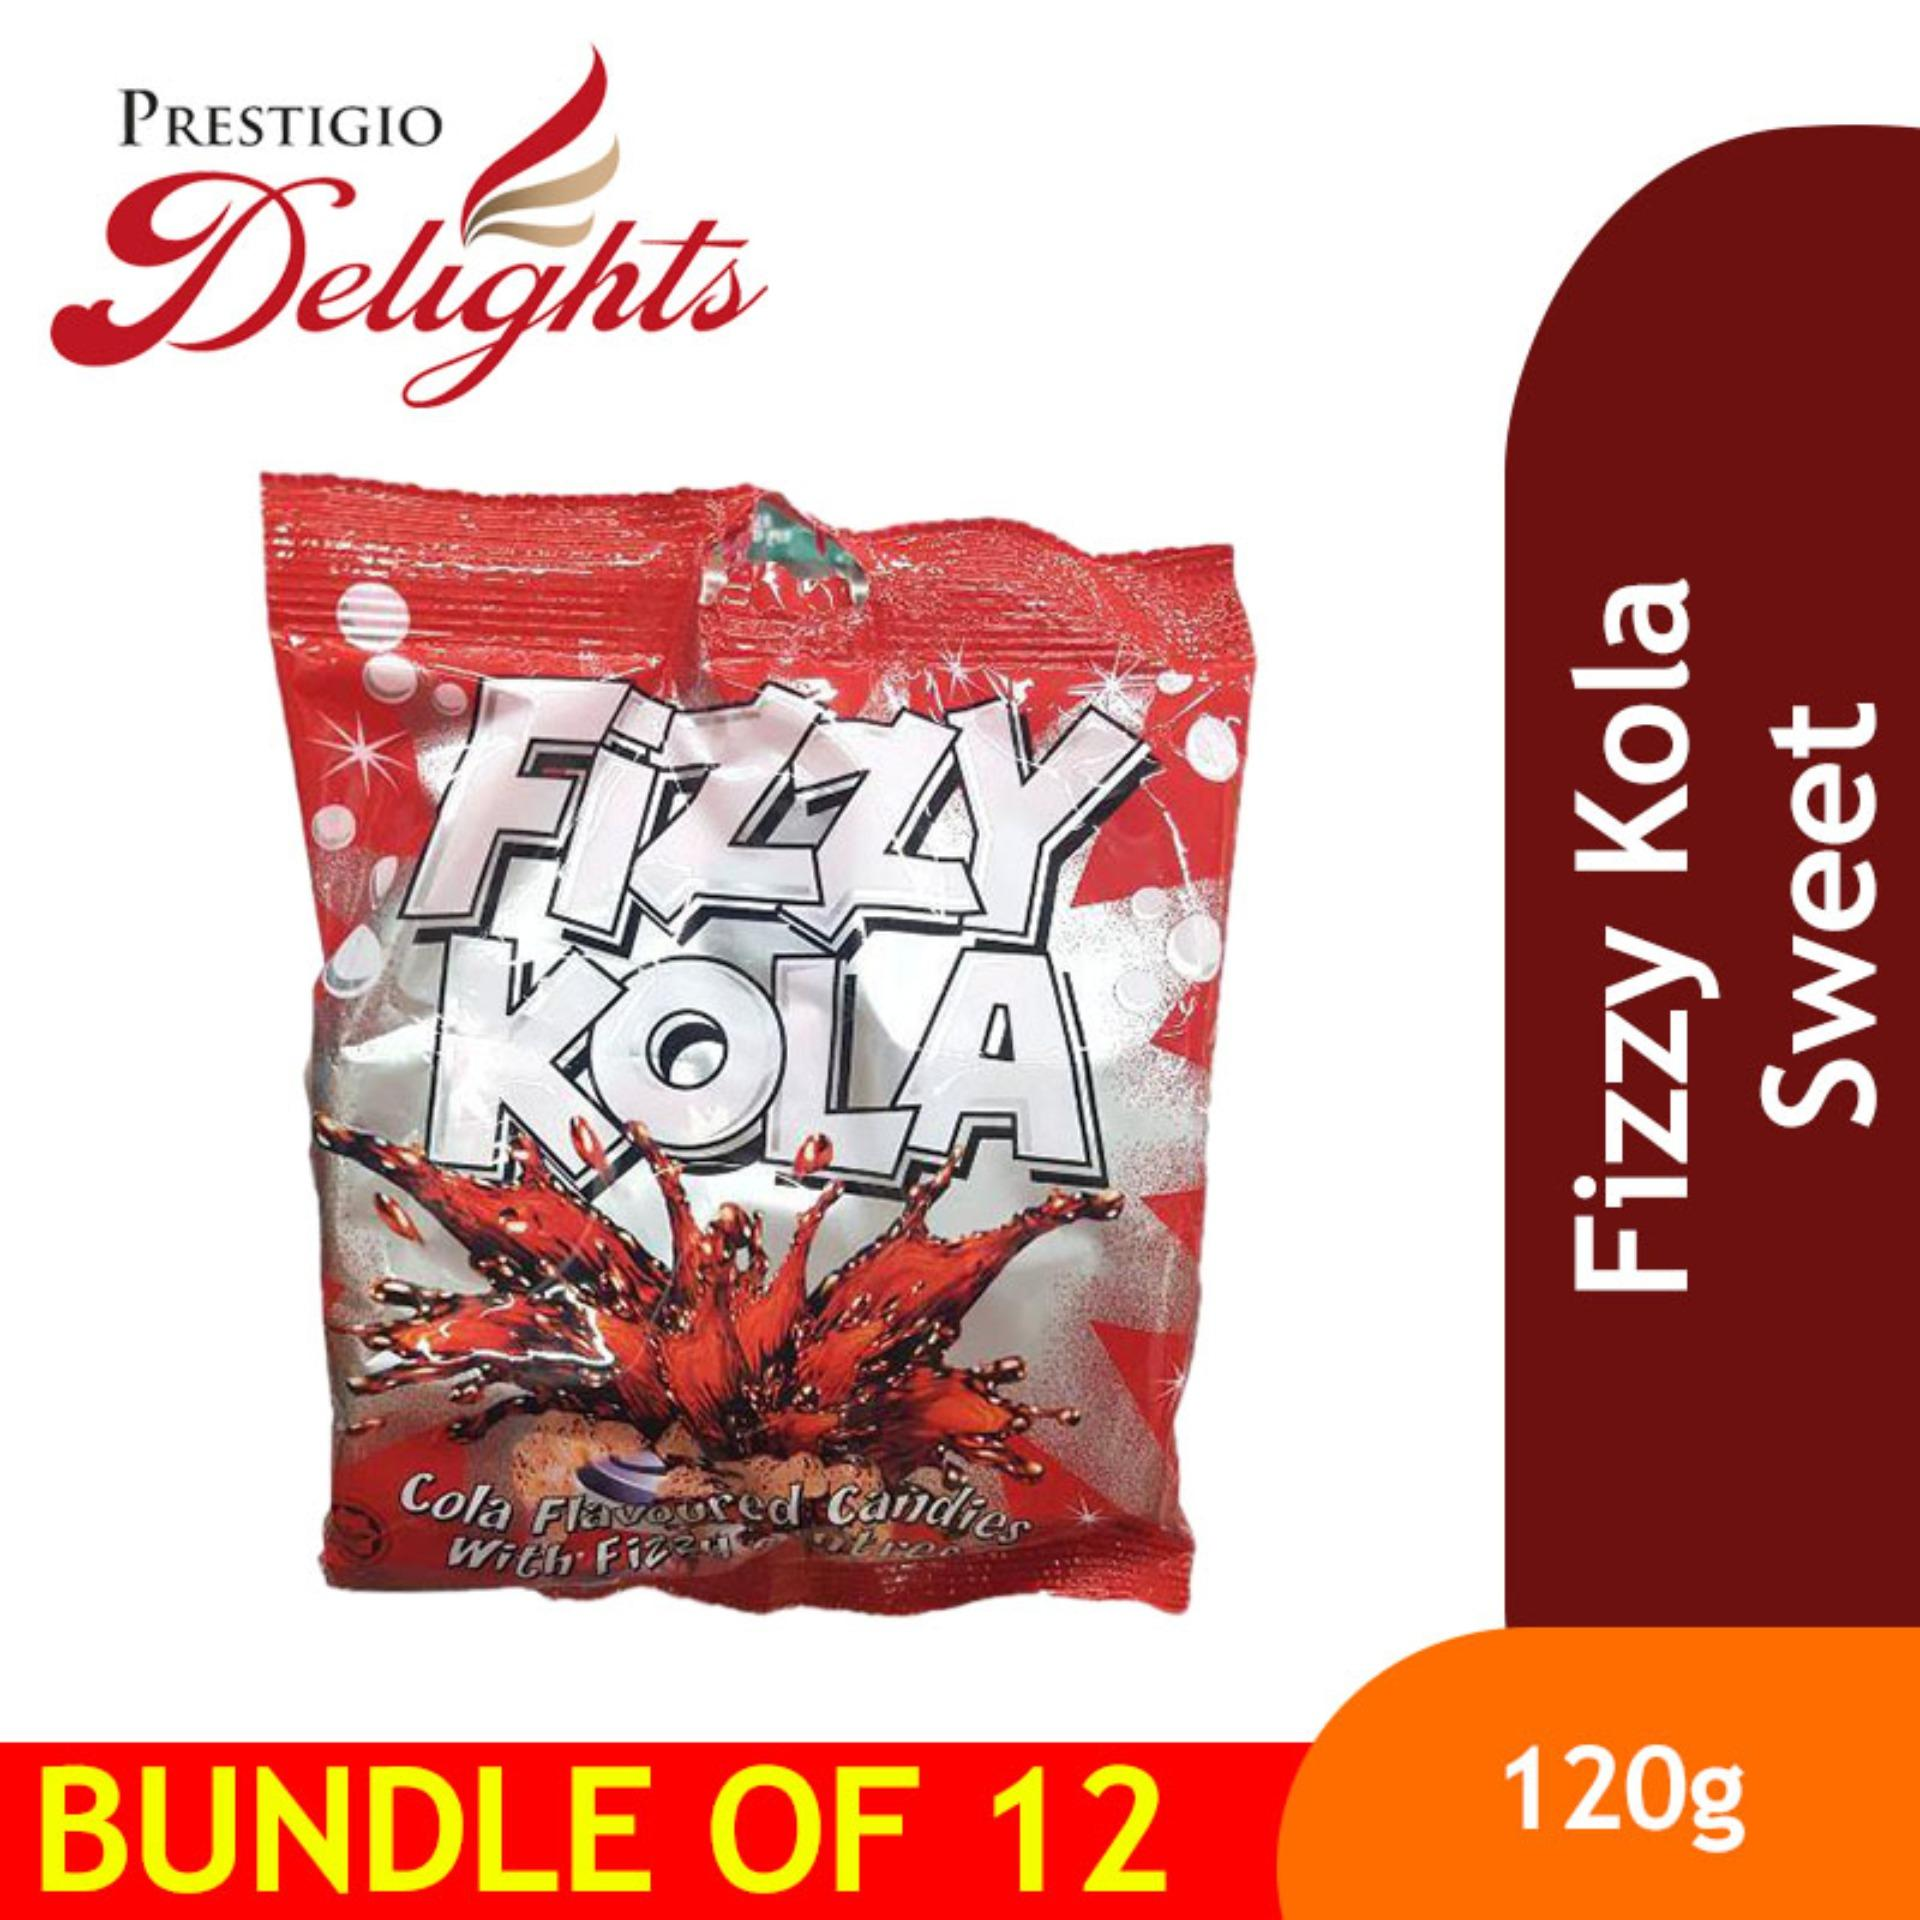 Fizzy Kola Sweet Bundle Of 12 By Prestigio Delights.